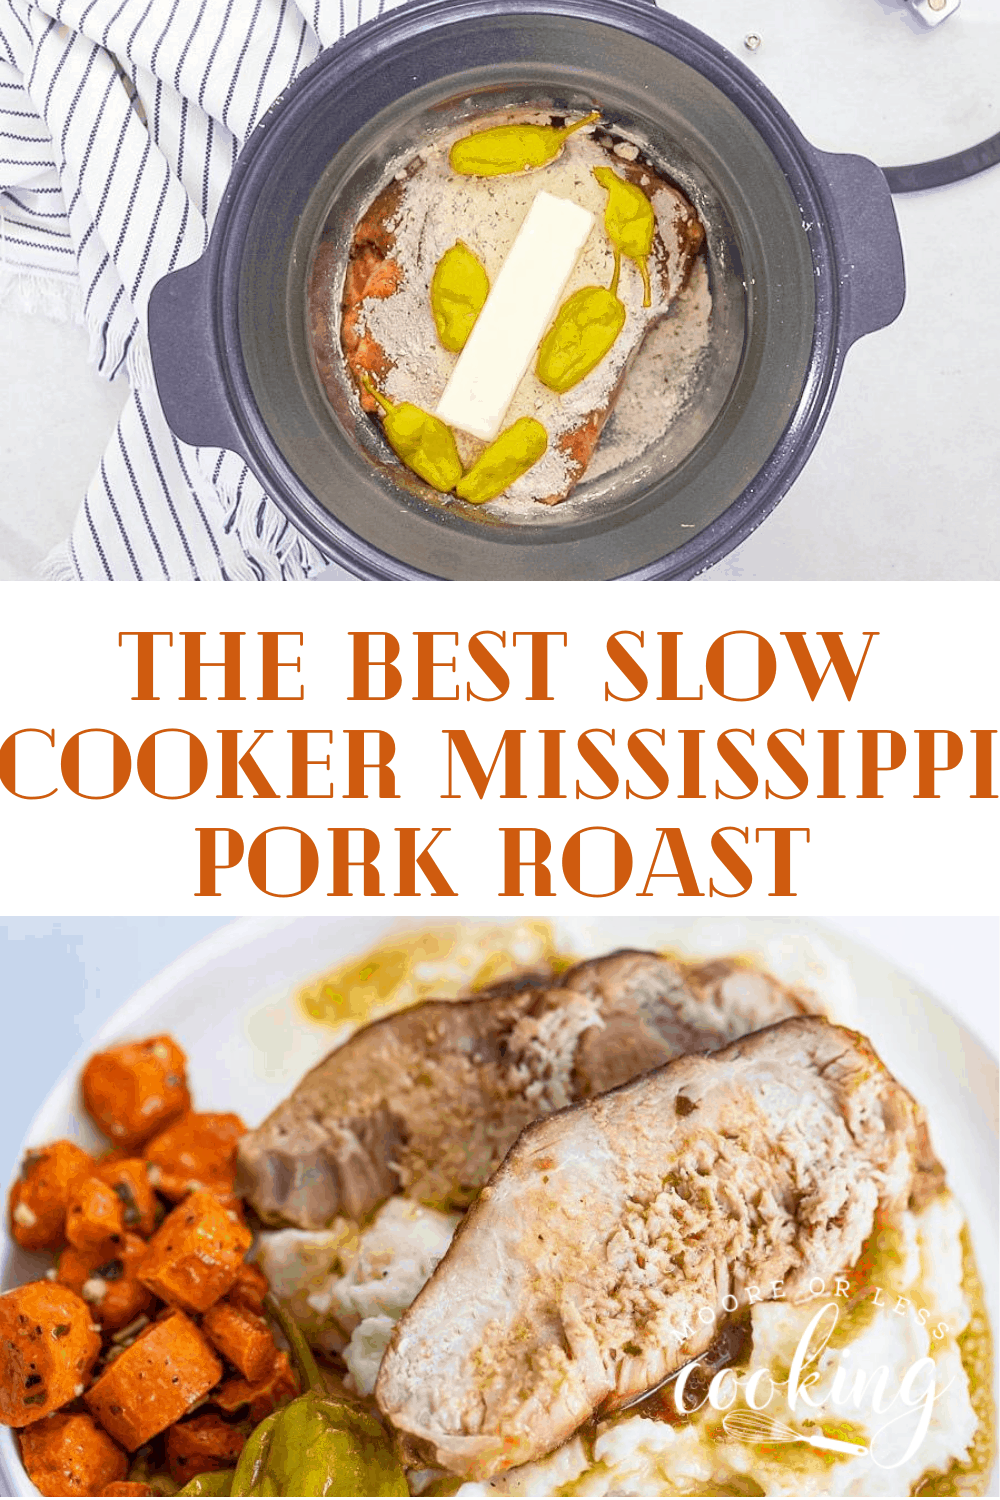 Slow Cooker Mississippi Pork Roast is the most simple meal that is made in the slow cooker/crockpot. Just set it and forget it for a tender to the touch pork roast that is incredibly flavorful and melts in your mouth delicious. This Slow Cooker roast is savory, sweet, and spicy. Takes only 5 minutes to prep and can be paired with tons of sides.  via @Mooreorlesscook